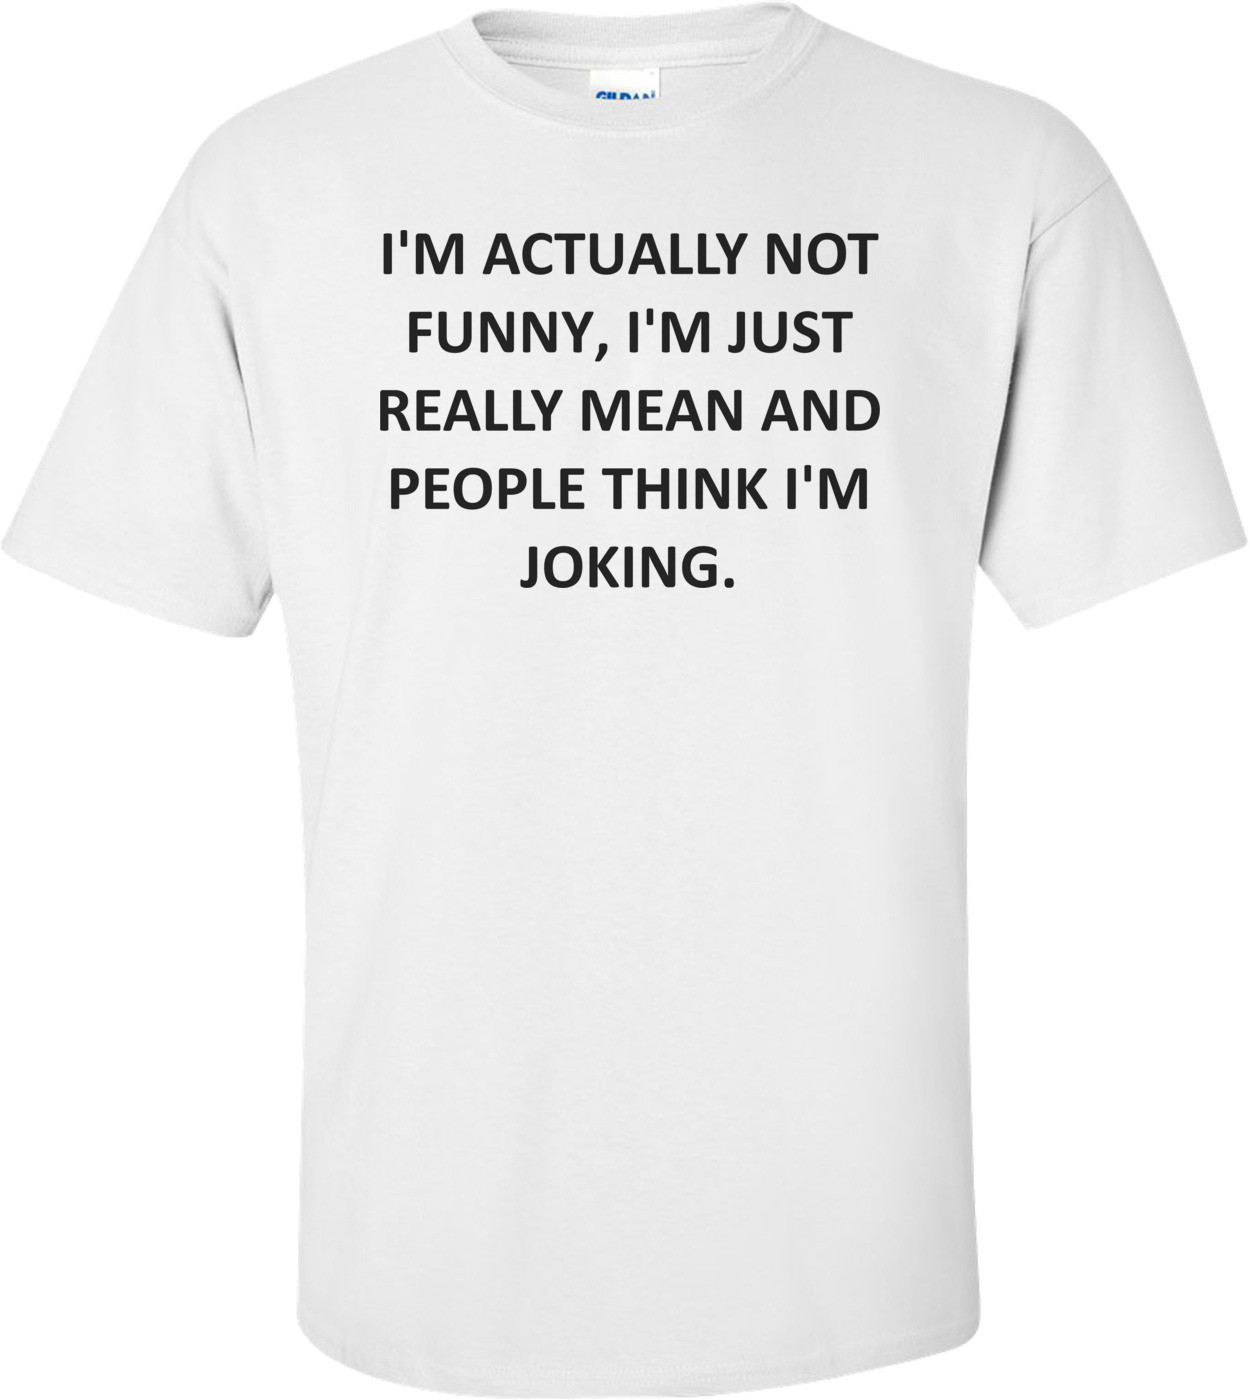 I'M ACTUALLY NOT FUNNY, I'M JUST REALLY MEAN AND PEOPLE THINK I'M JOKING. Shirt